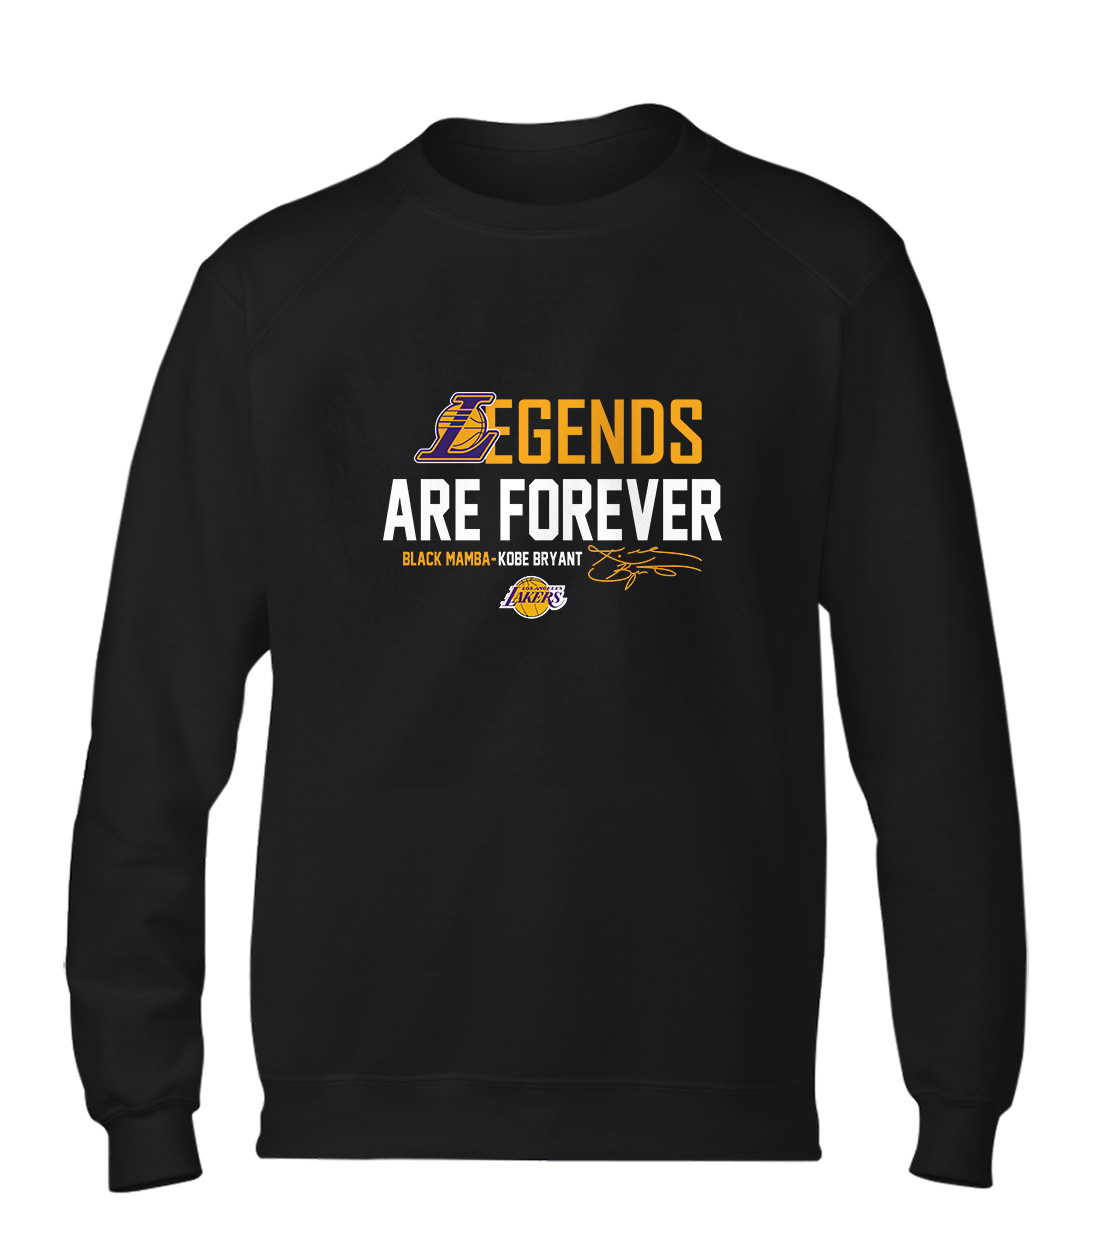 L.A. Lakers Lakers Legends Are Forever Basic (BSC-BLC-131-PLYR-LAL-KOBE.LEGENDS)